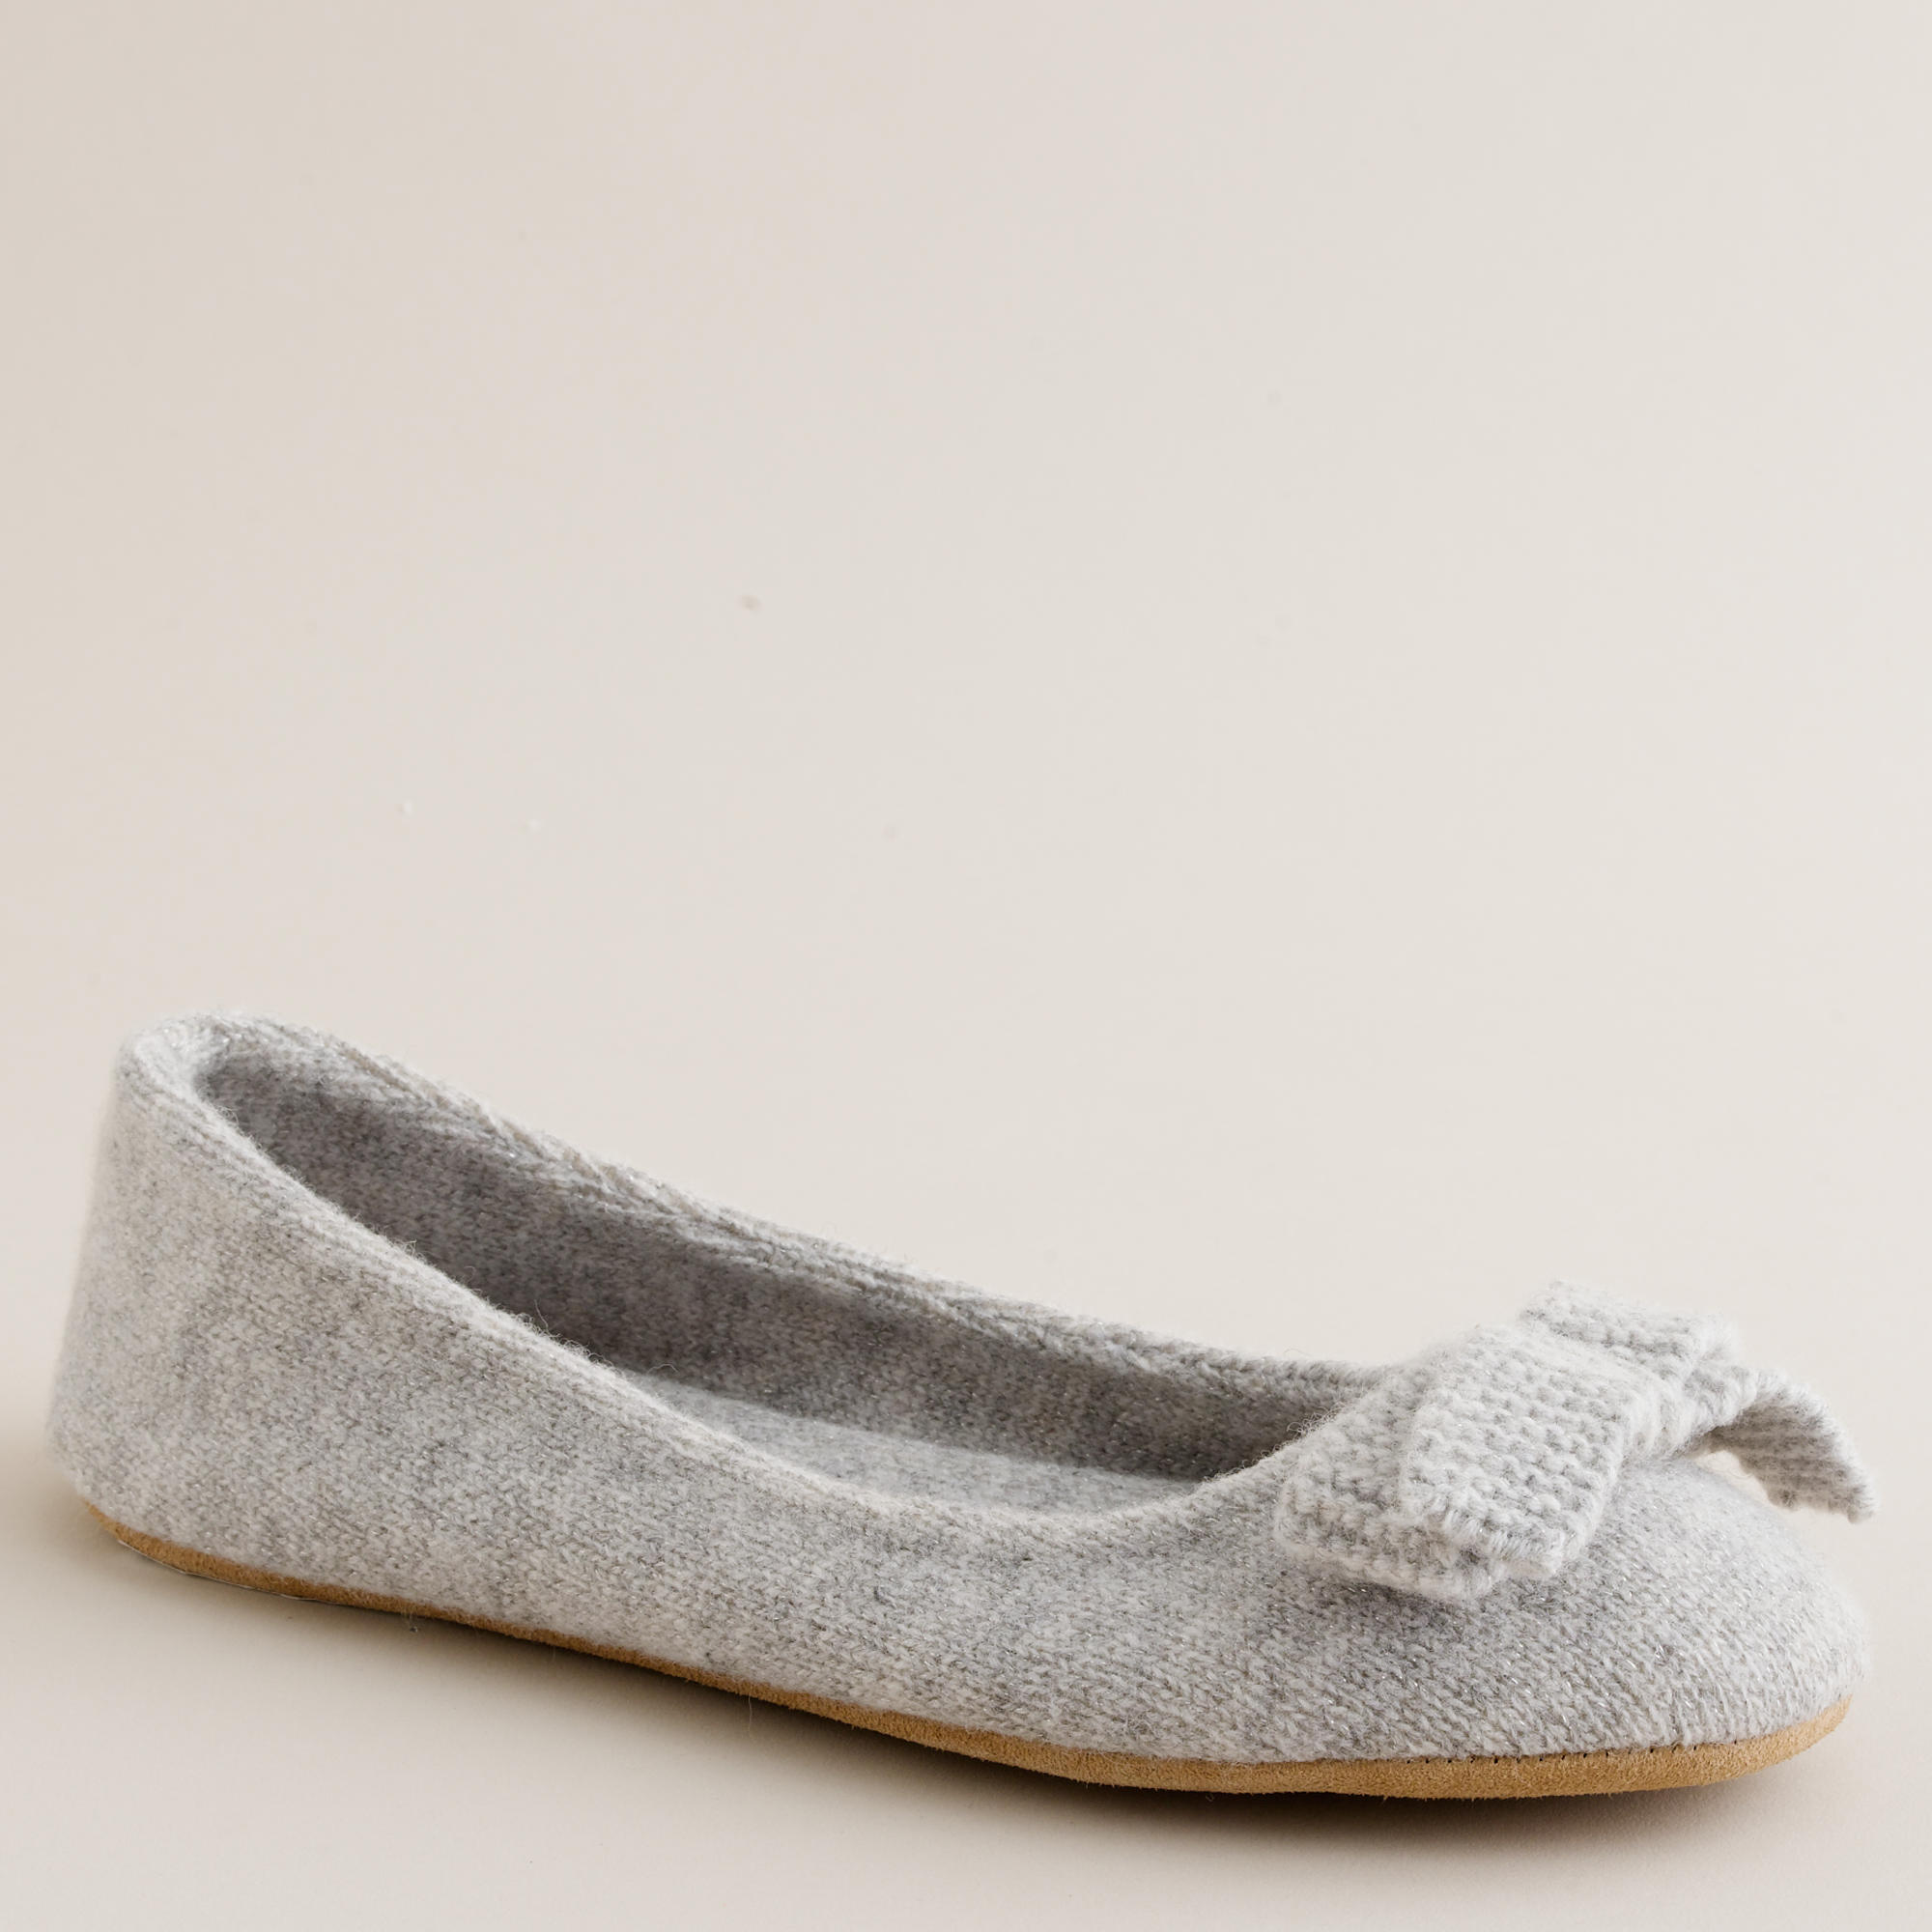 Metallic wool ballet slippers j crew for J crew bedroom slippers